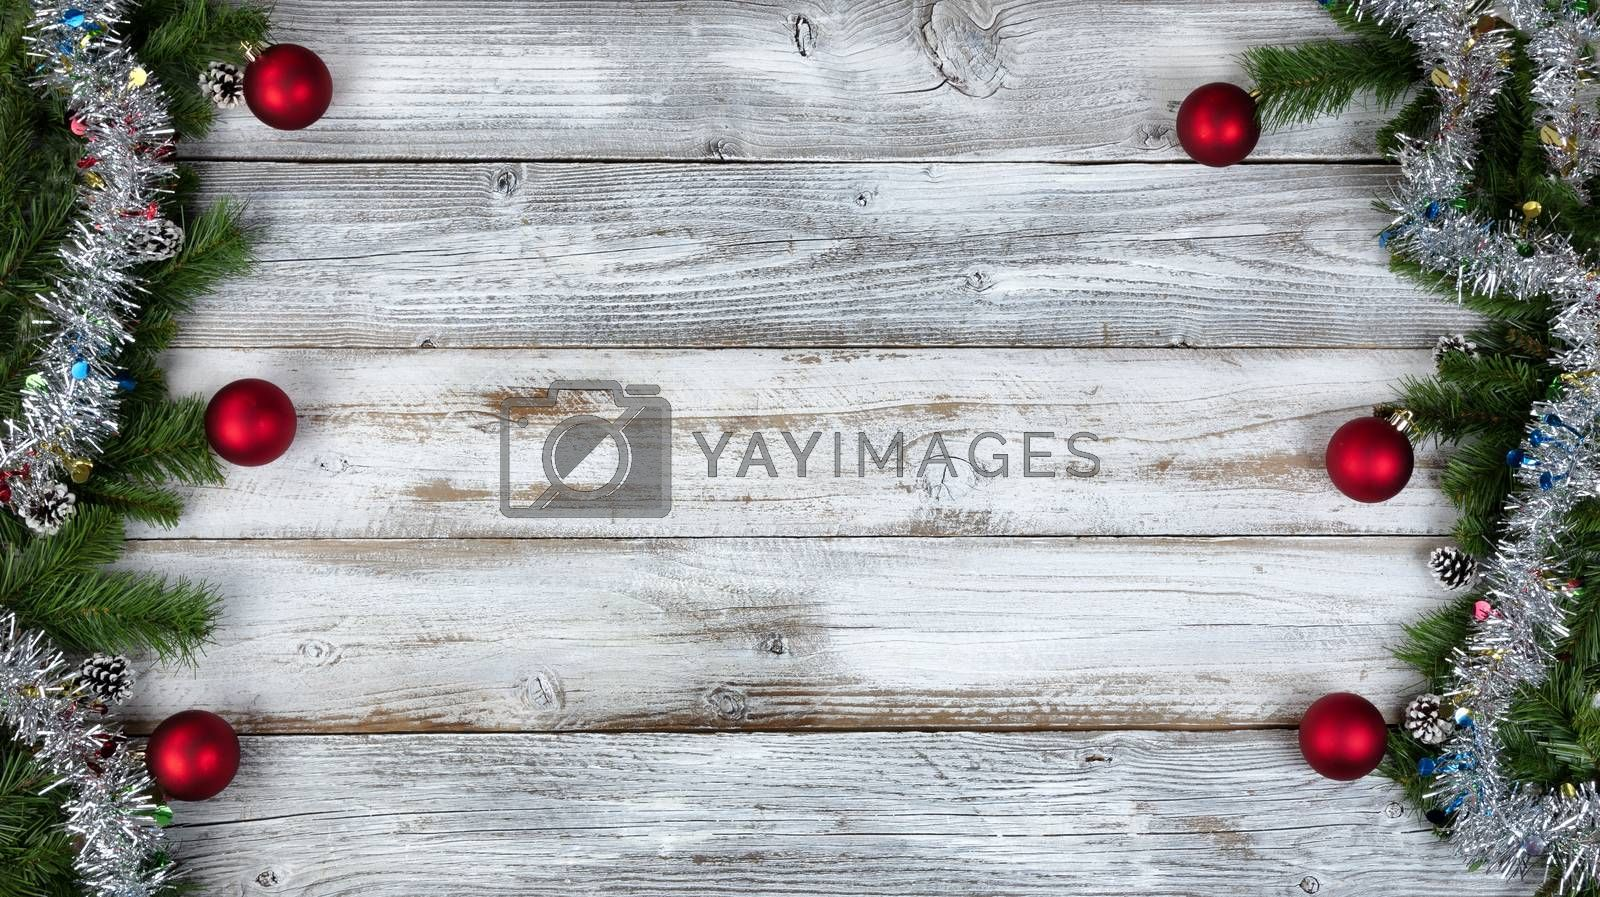 Winter holiday concept background for Christmas or New Year